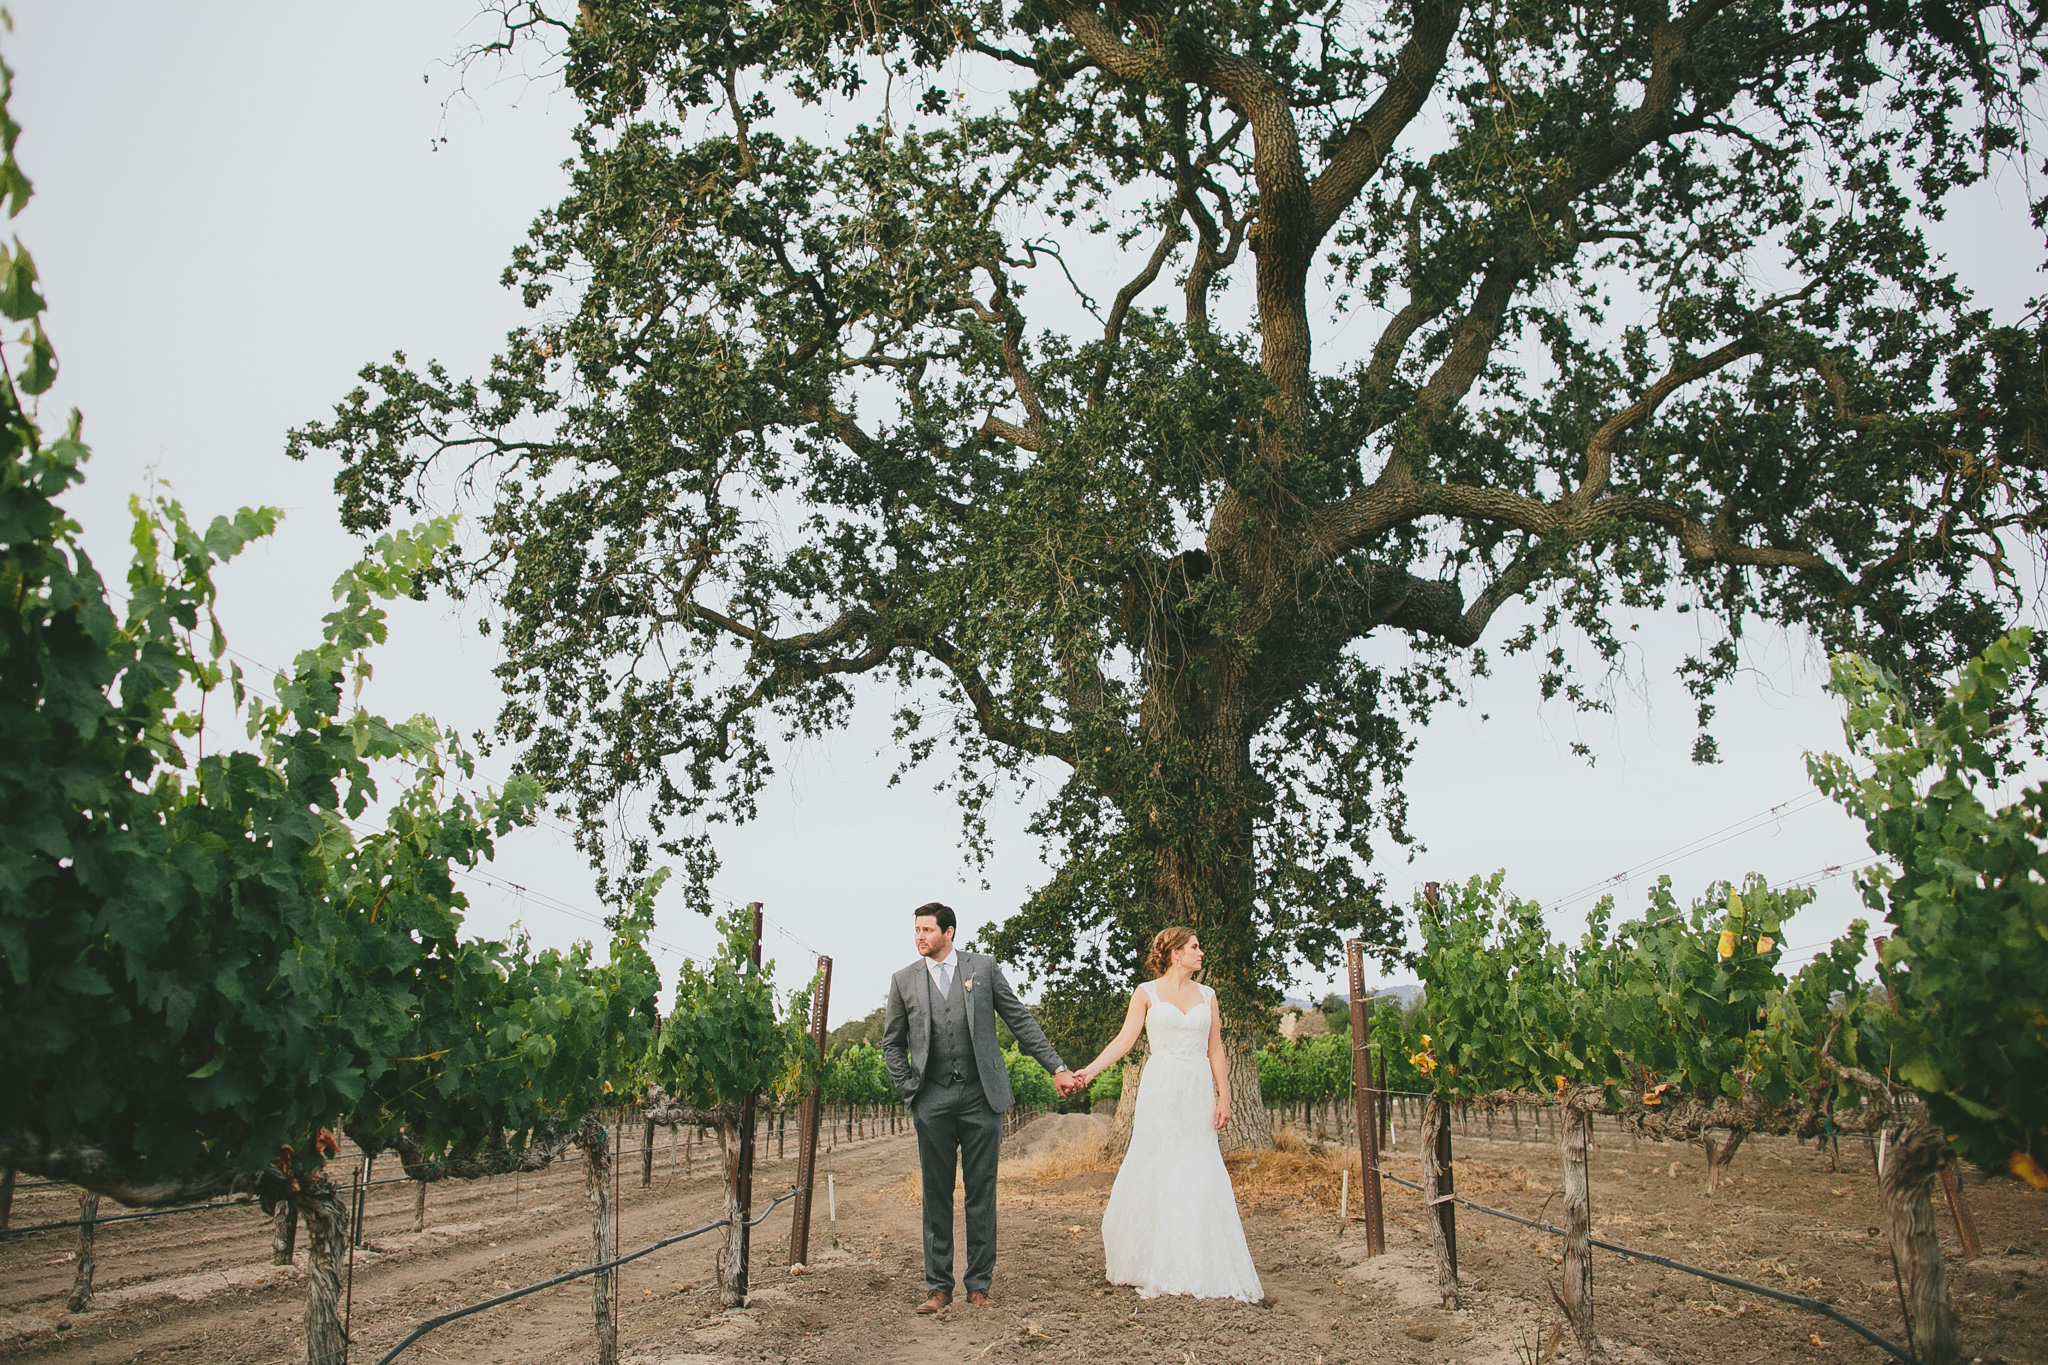 whitney+parker-WEB_BLOG-132